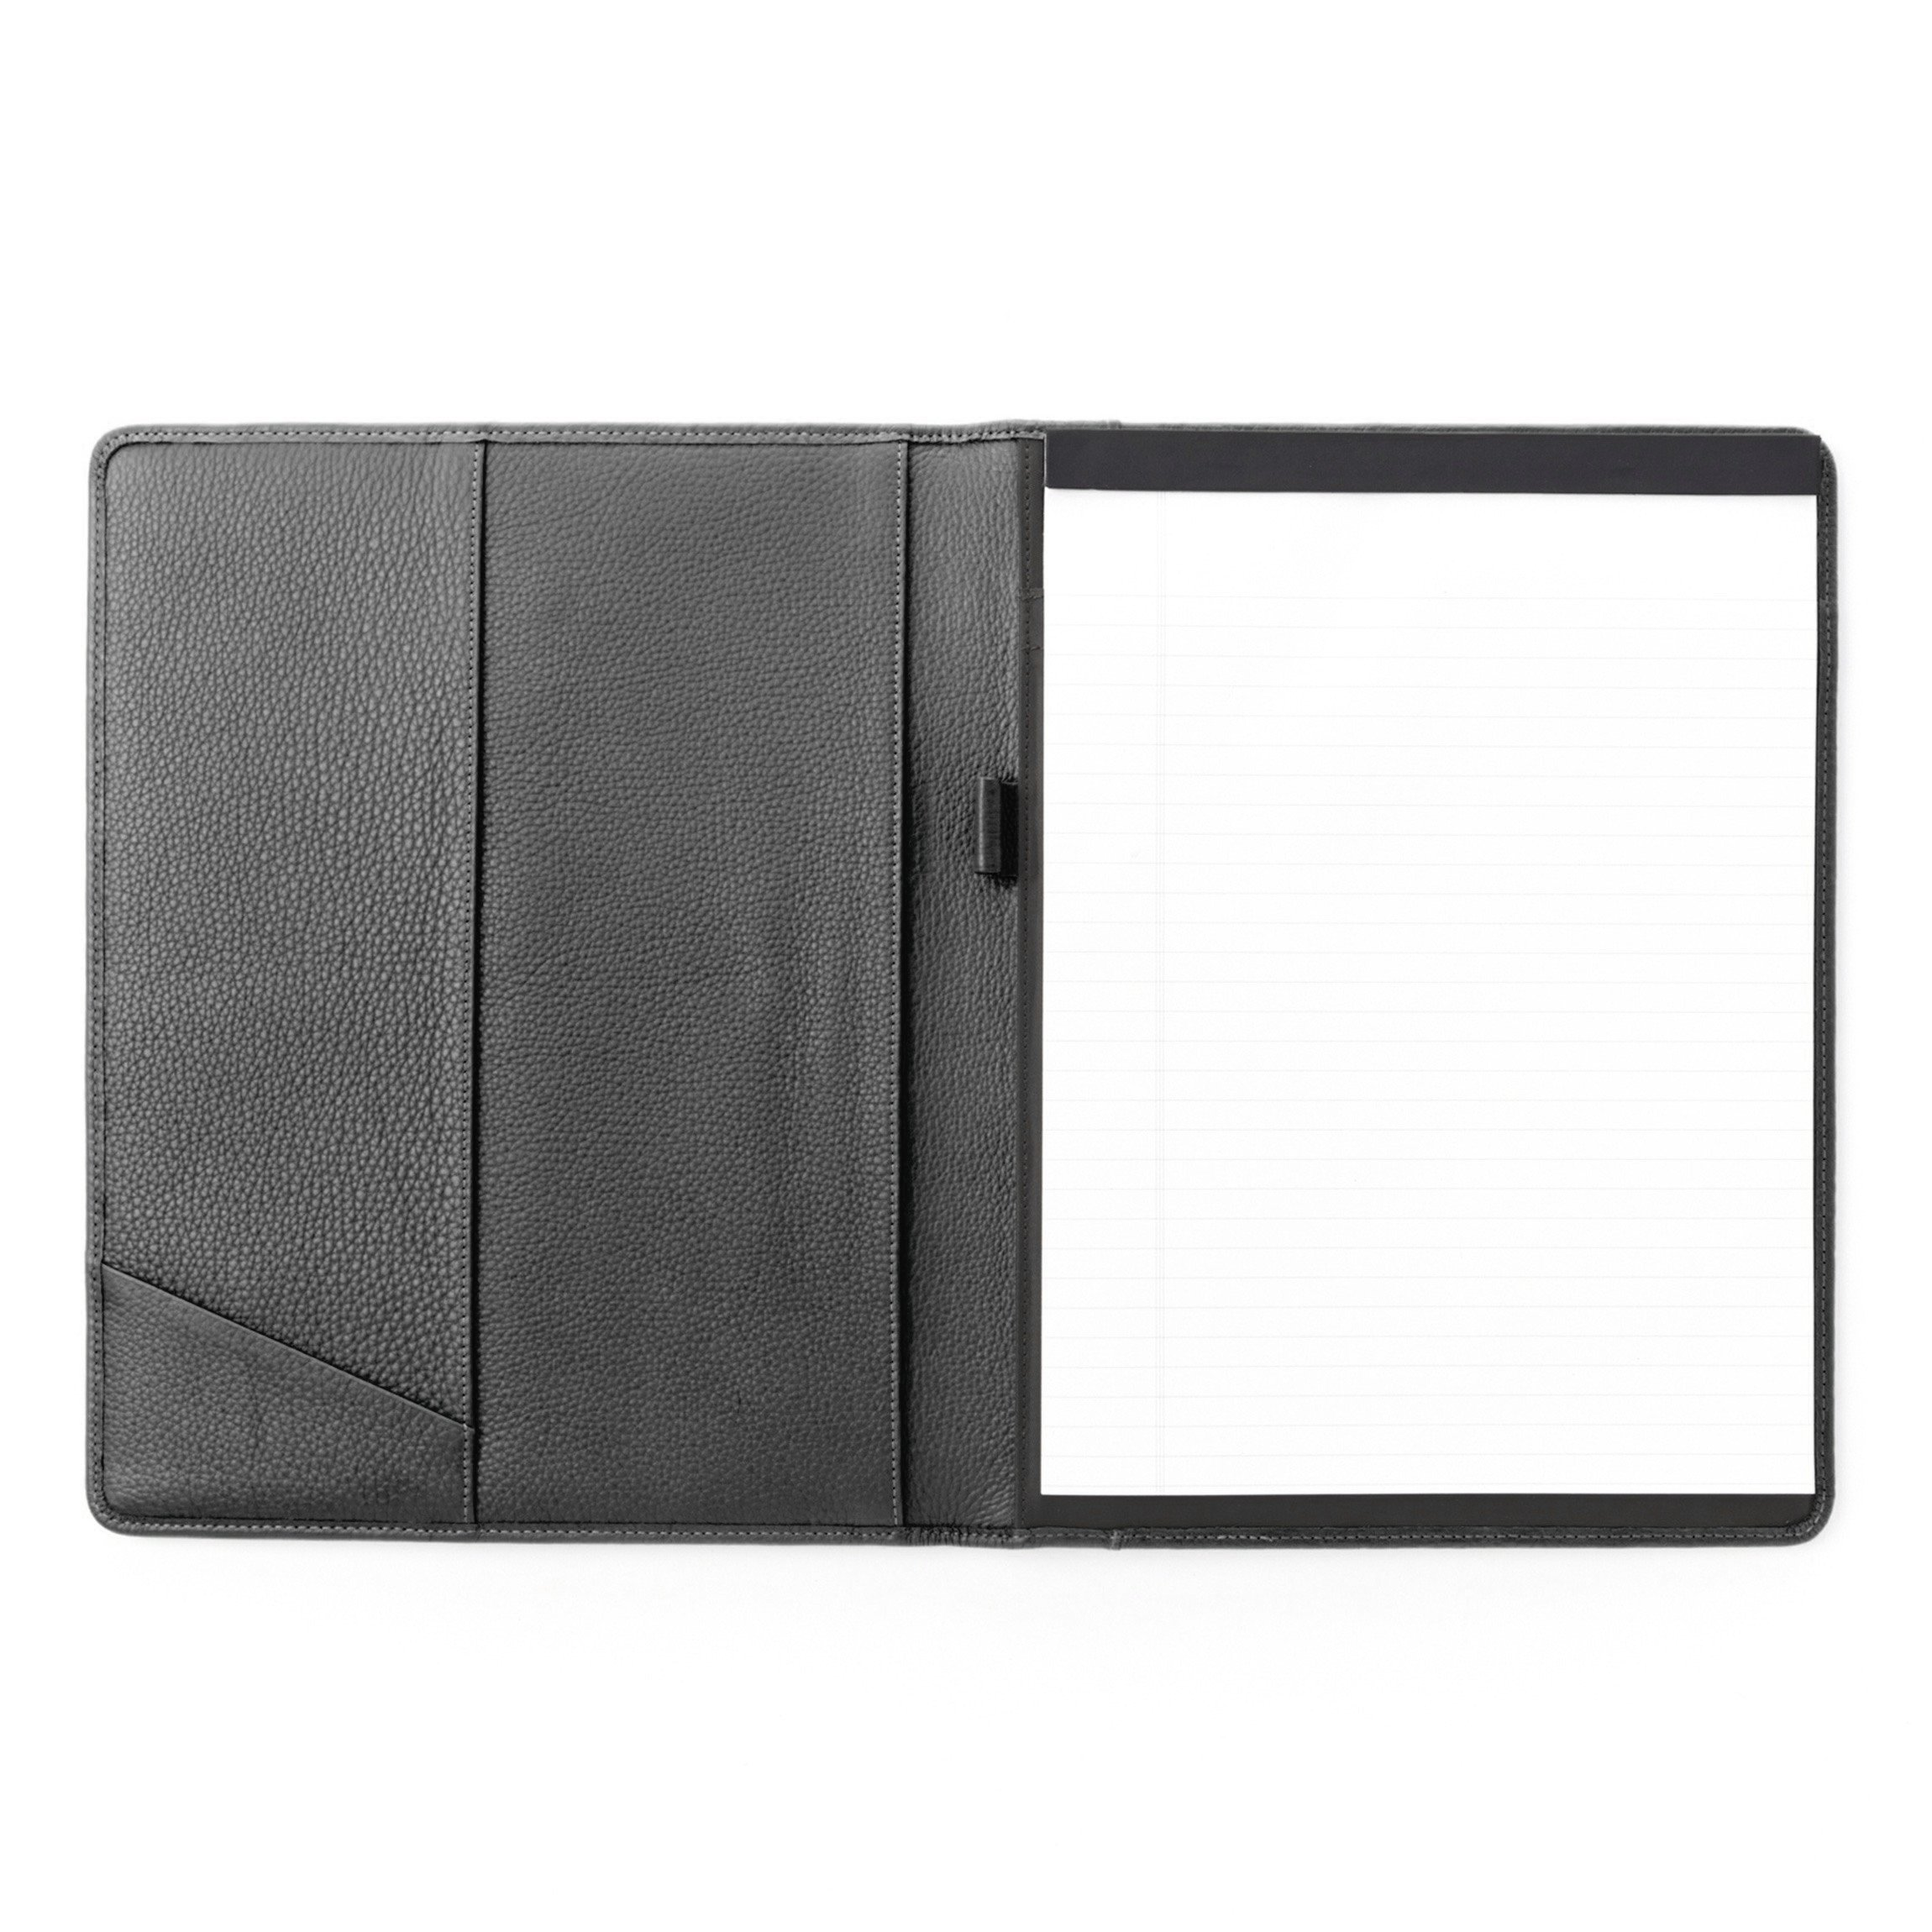 Leatherlogy Standard Padfolio with Pen Loop - Full Grain Leather Leather - Charcoal (gray)